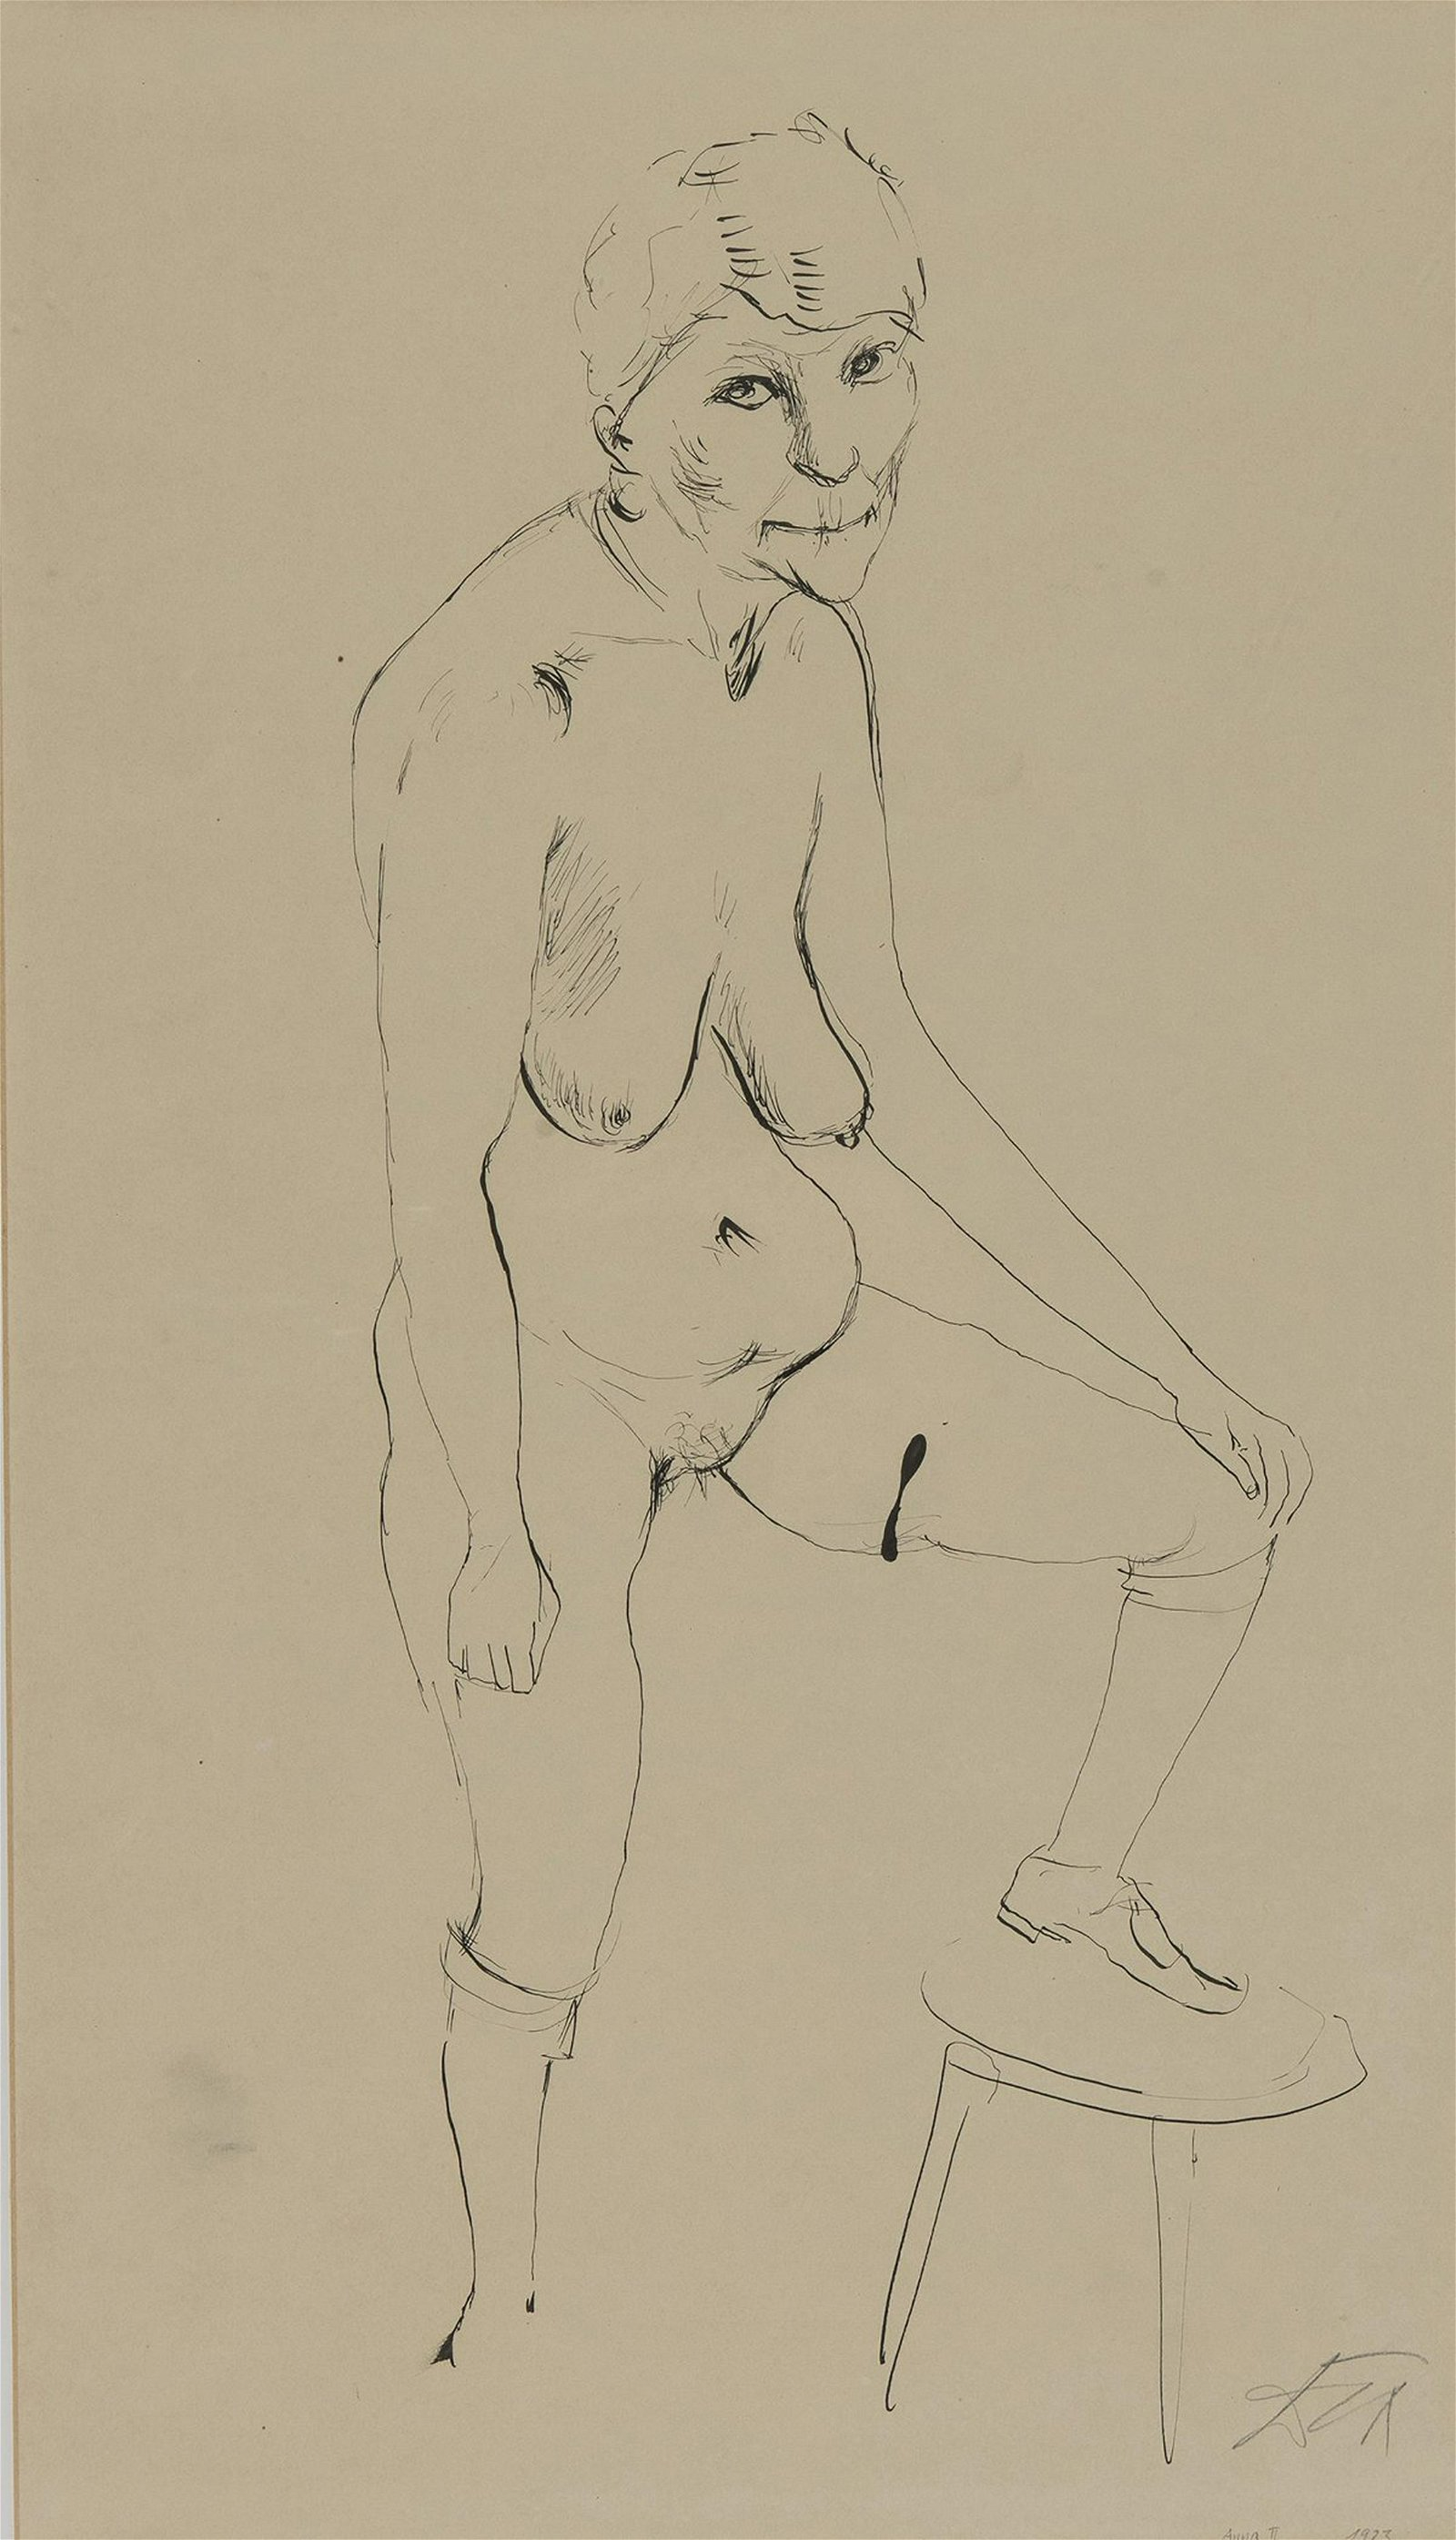 Otto Dix, pencil drawing, 1923